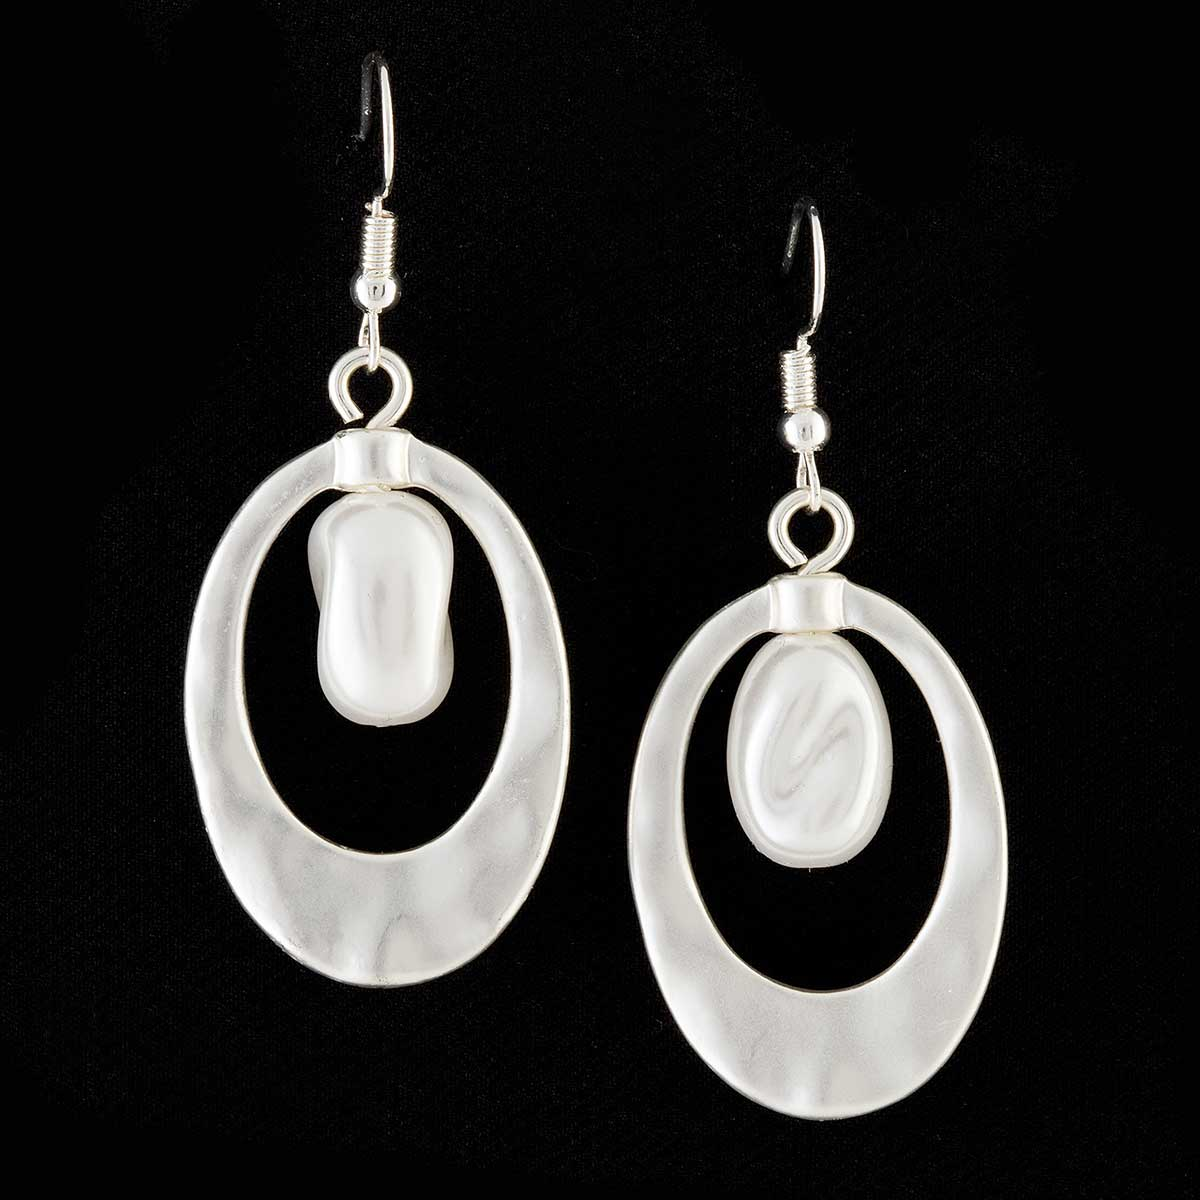 Satin Silver Oval with Pearl French Wire Earrings